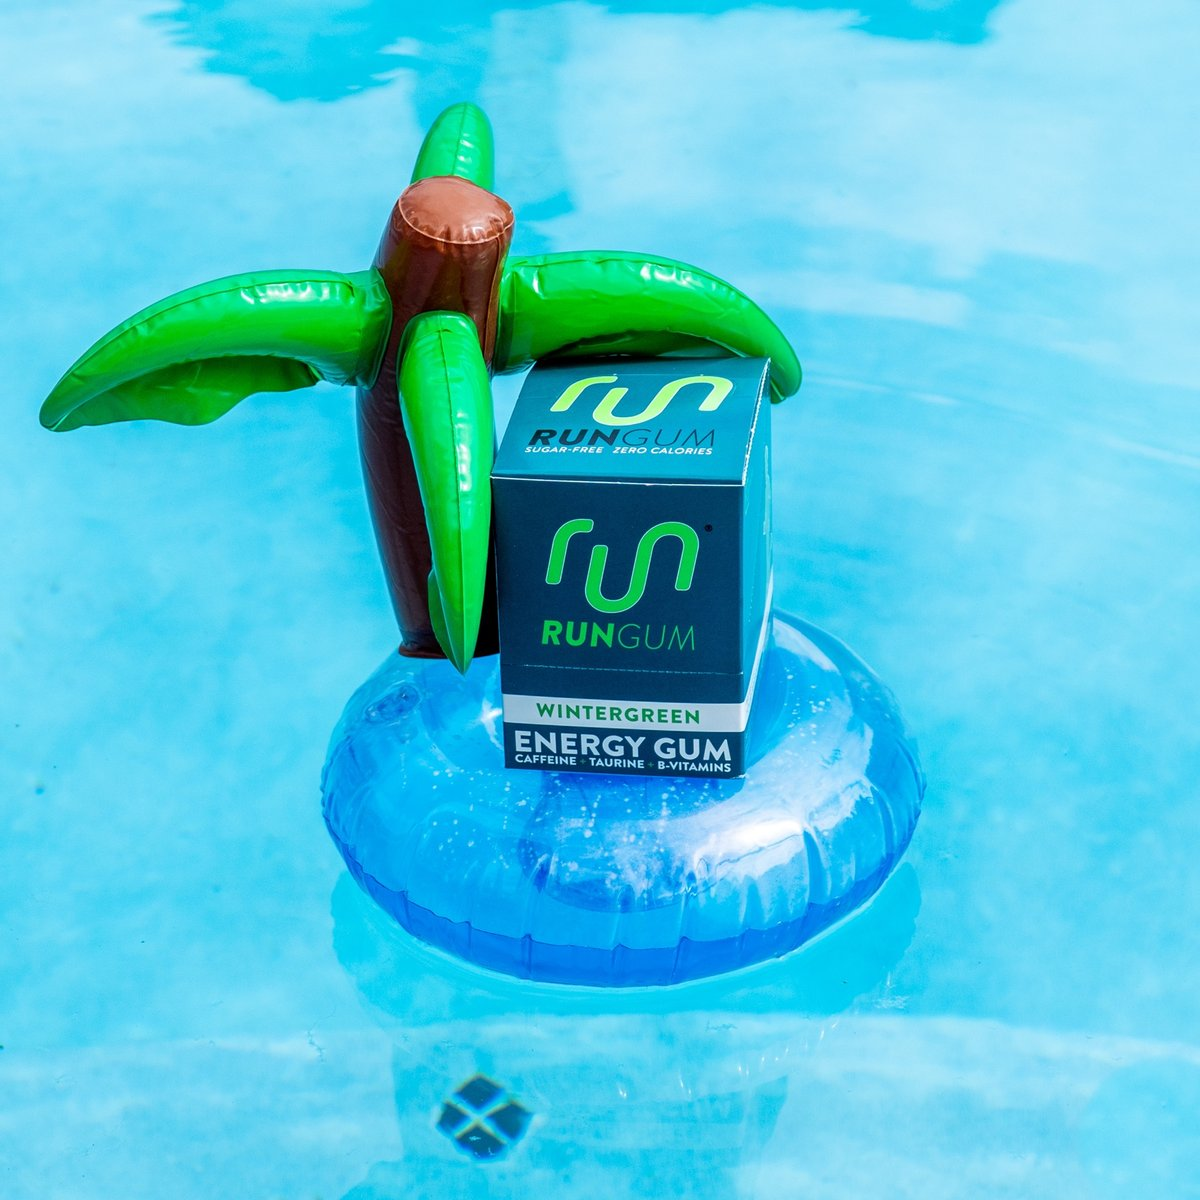 The perfect sunny day cool down combo ❄️  Keep it cool on those hot days- whether you're out celebrating or chillin out in the shade 😎 Wintergreen has that icy cool flavor and boost to keep you going!   How are you getting out in the sun this weekend? ⬇️ https://t.co/HY6Lk9wqhO